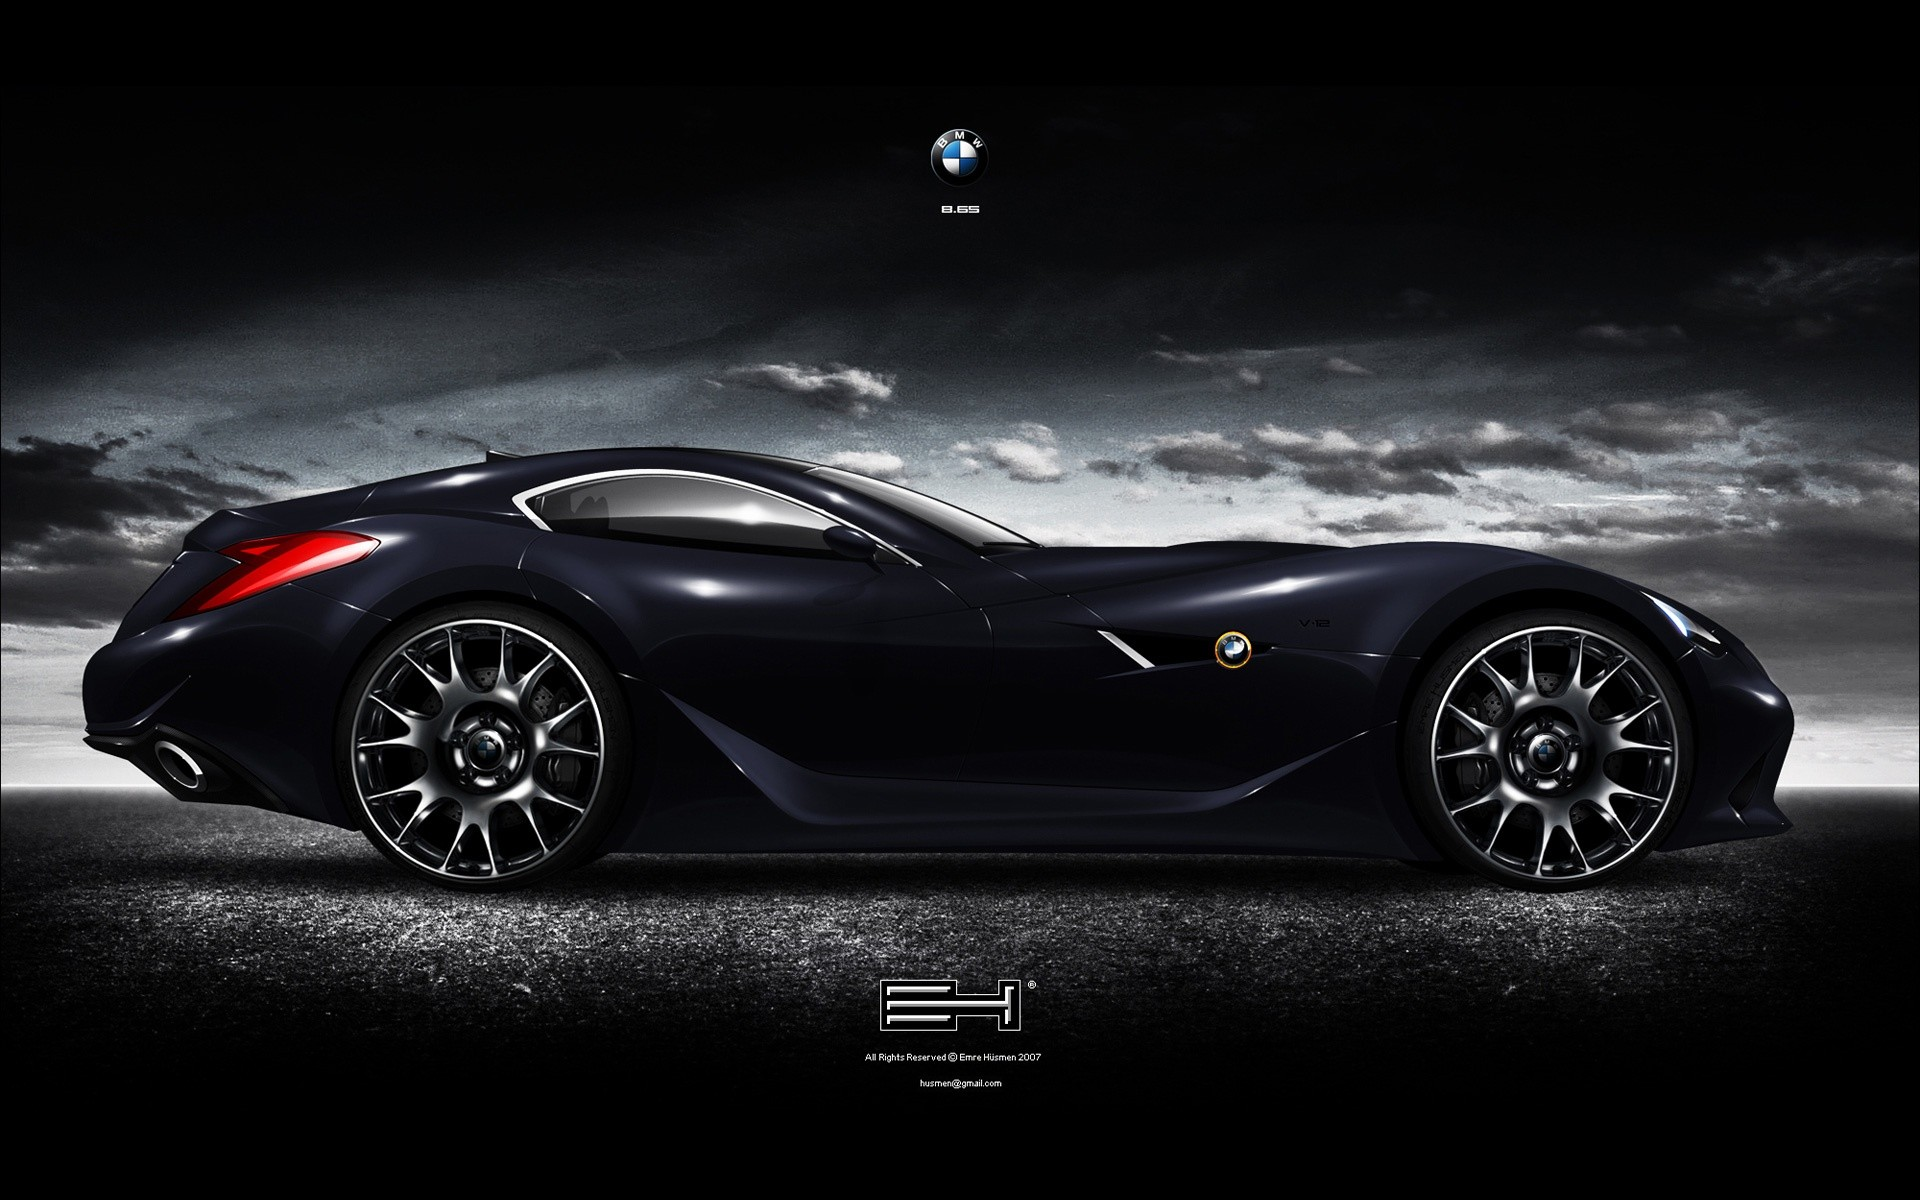 Hd Supercars Wallpaperssupercars Wallpapers Full Hd Wallpaper Search 1920x1200